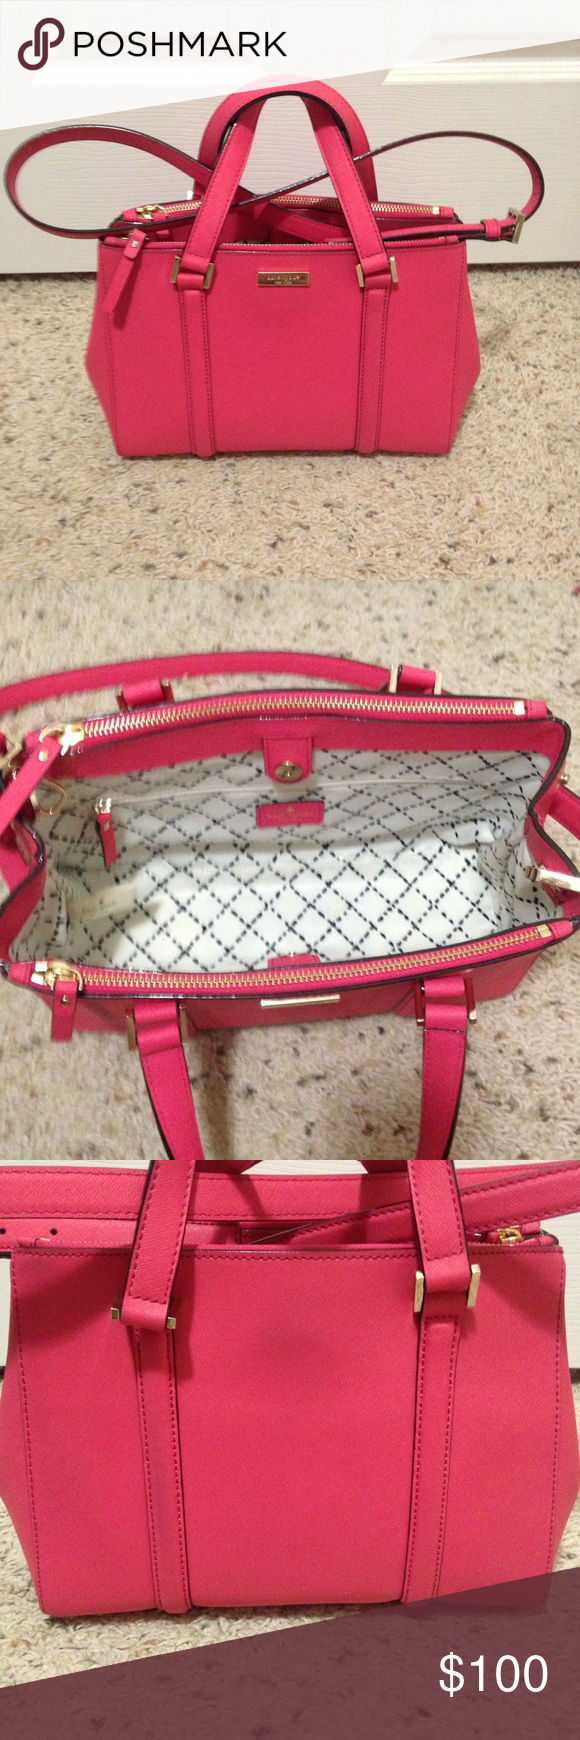 Kate spade sm loden strawberry Kate spade newbury lane small loden satchel in strawberry. Shows some wear on back. Comes with dust bag and care book. Smoke free pet free home. kate spade Bags Satchels